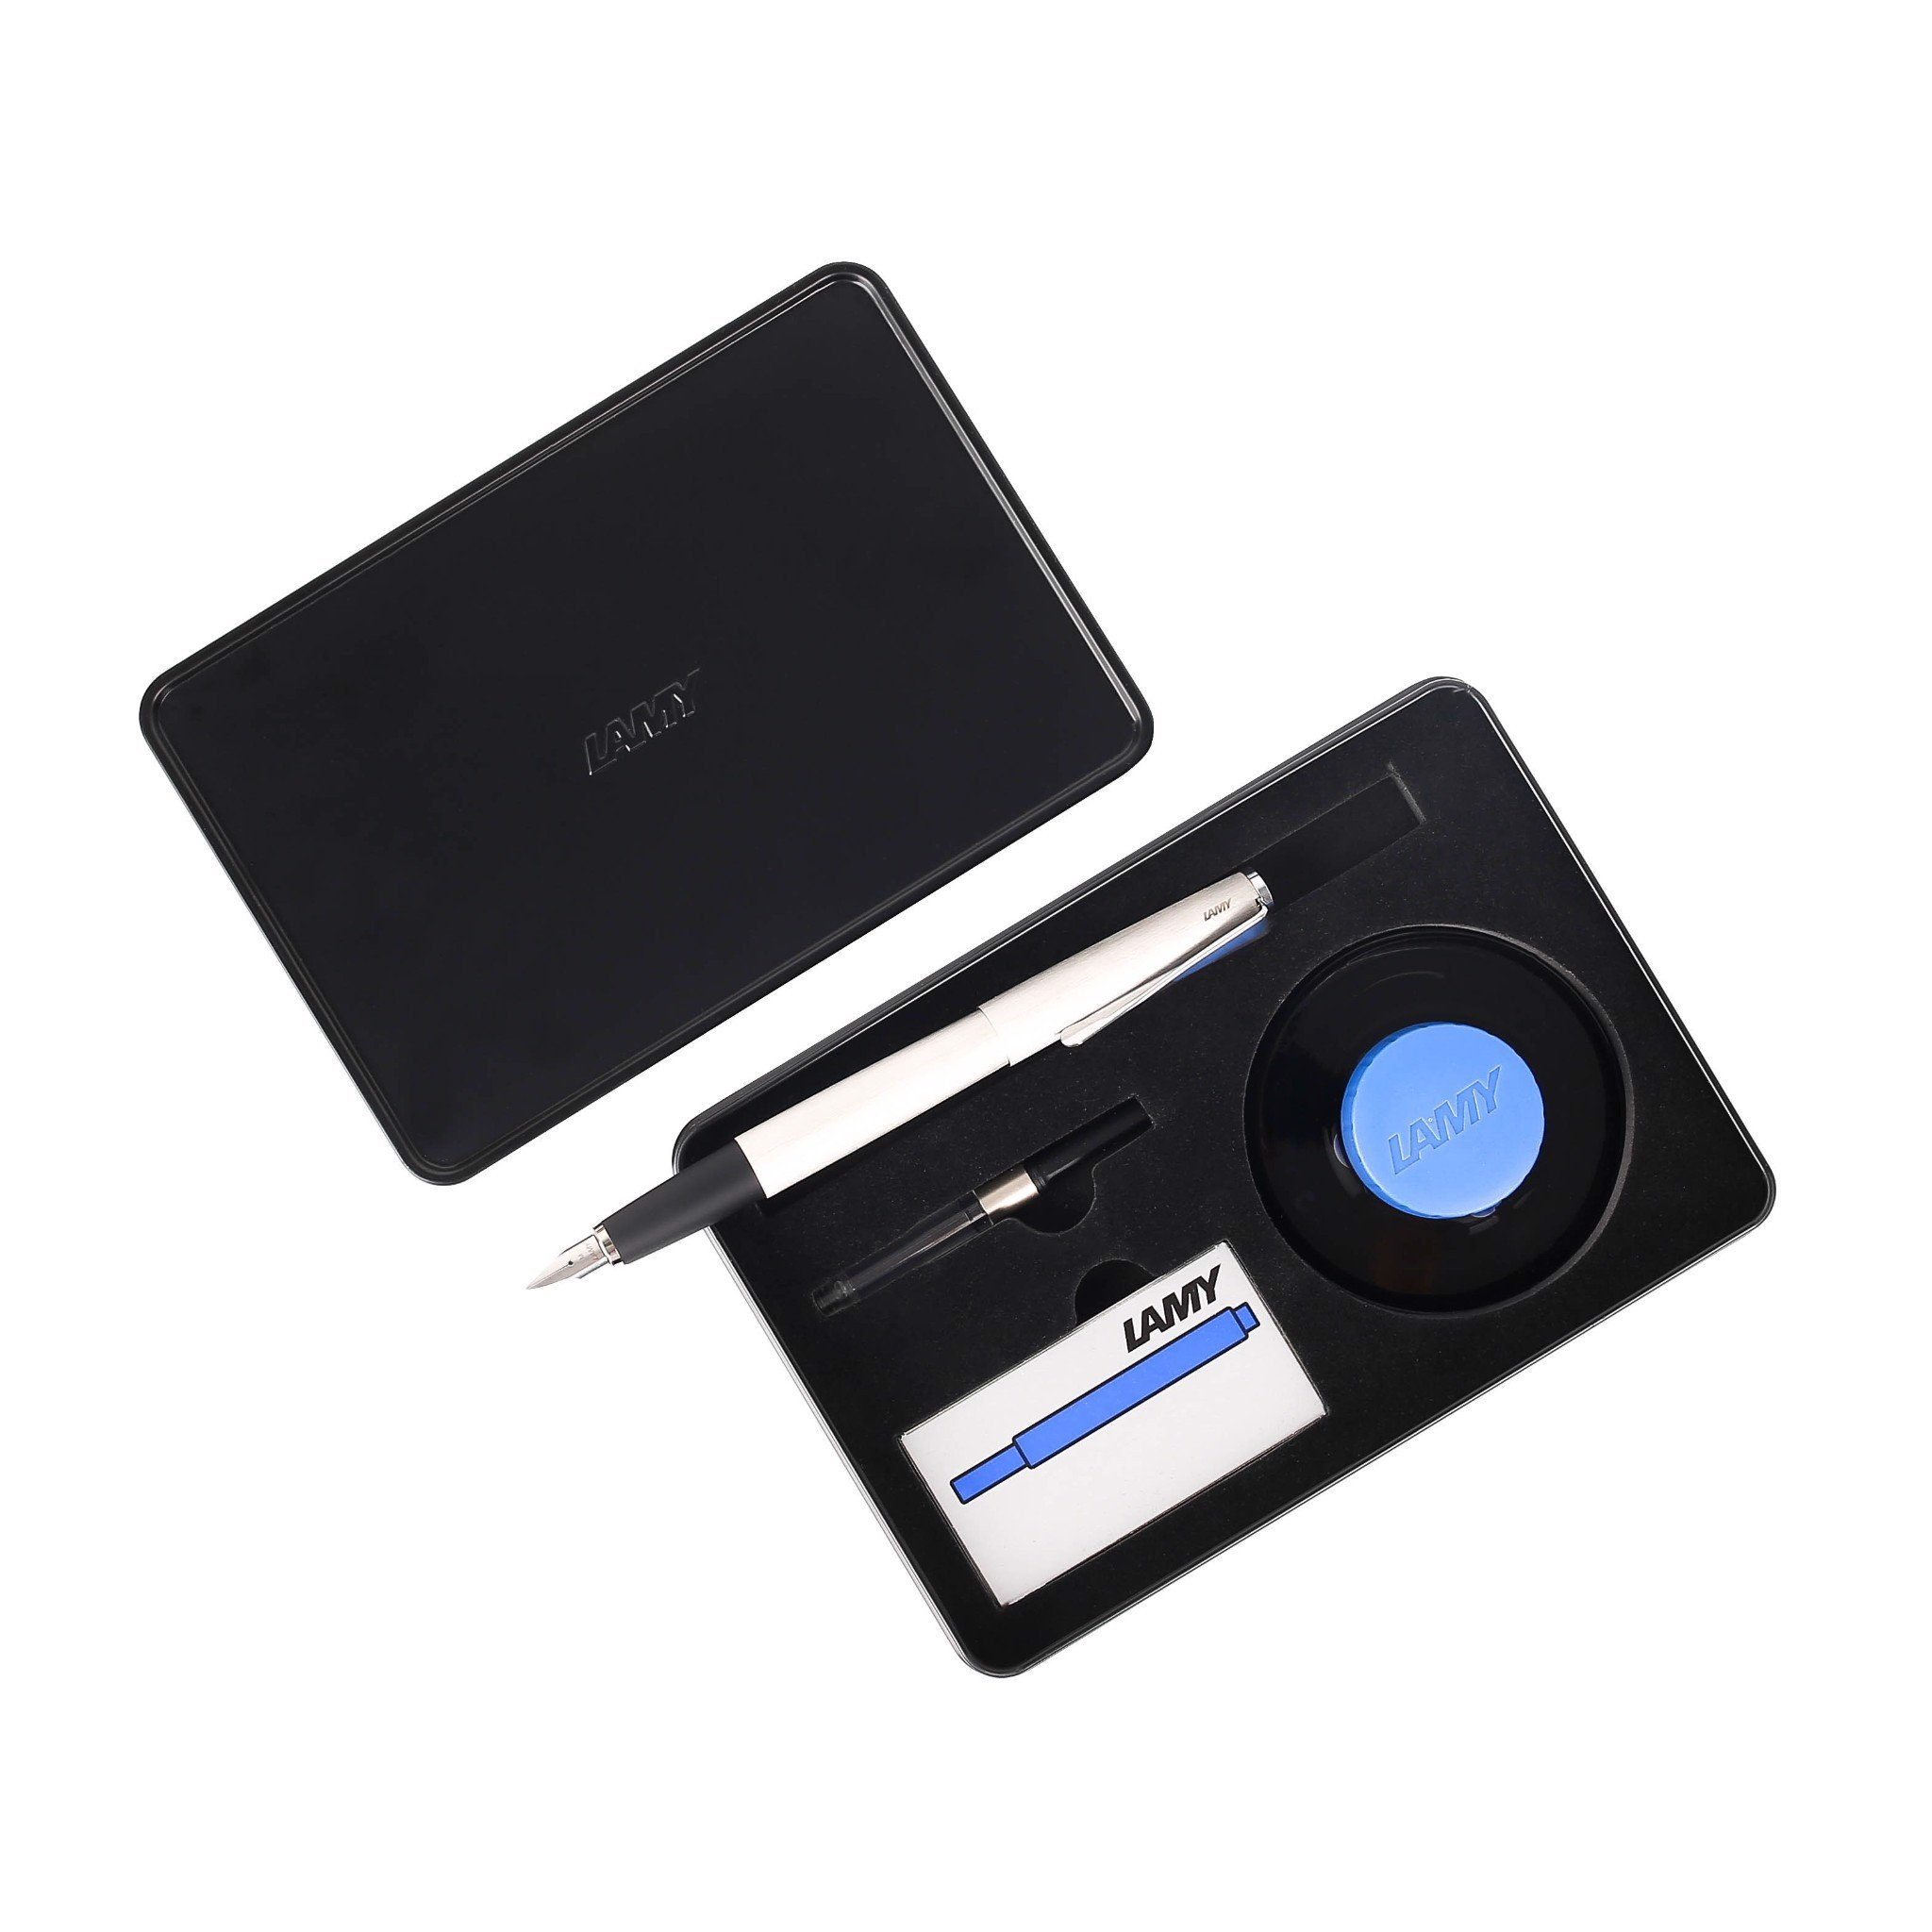 bo gift set lamy studio brushed